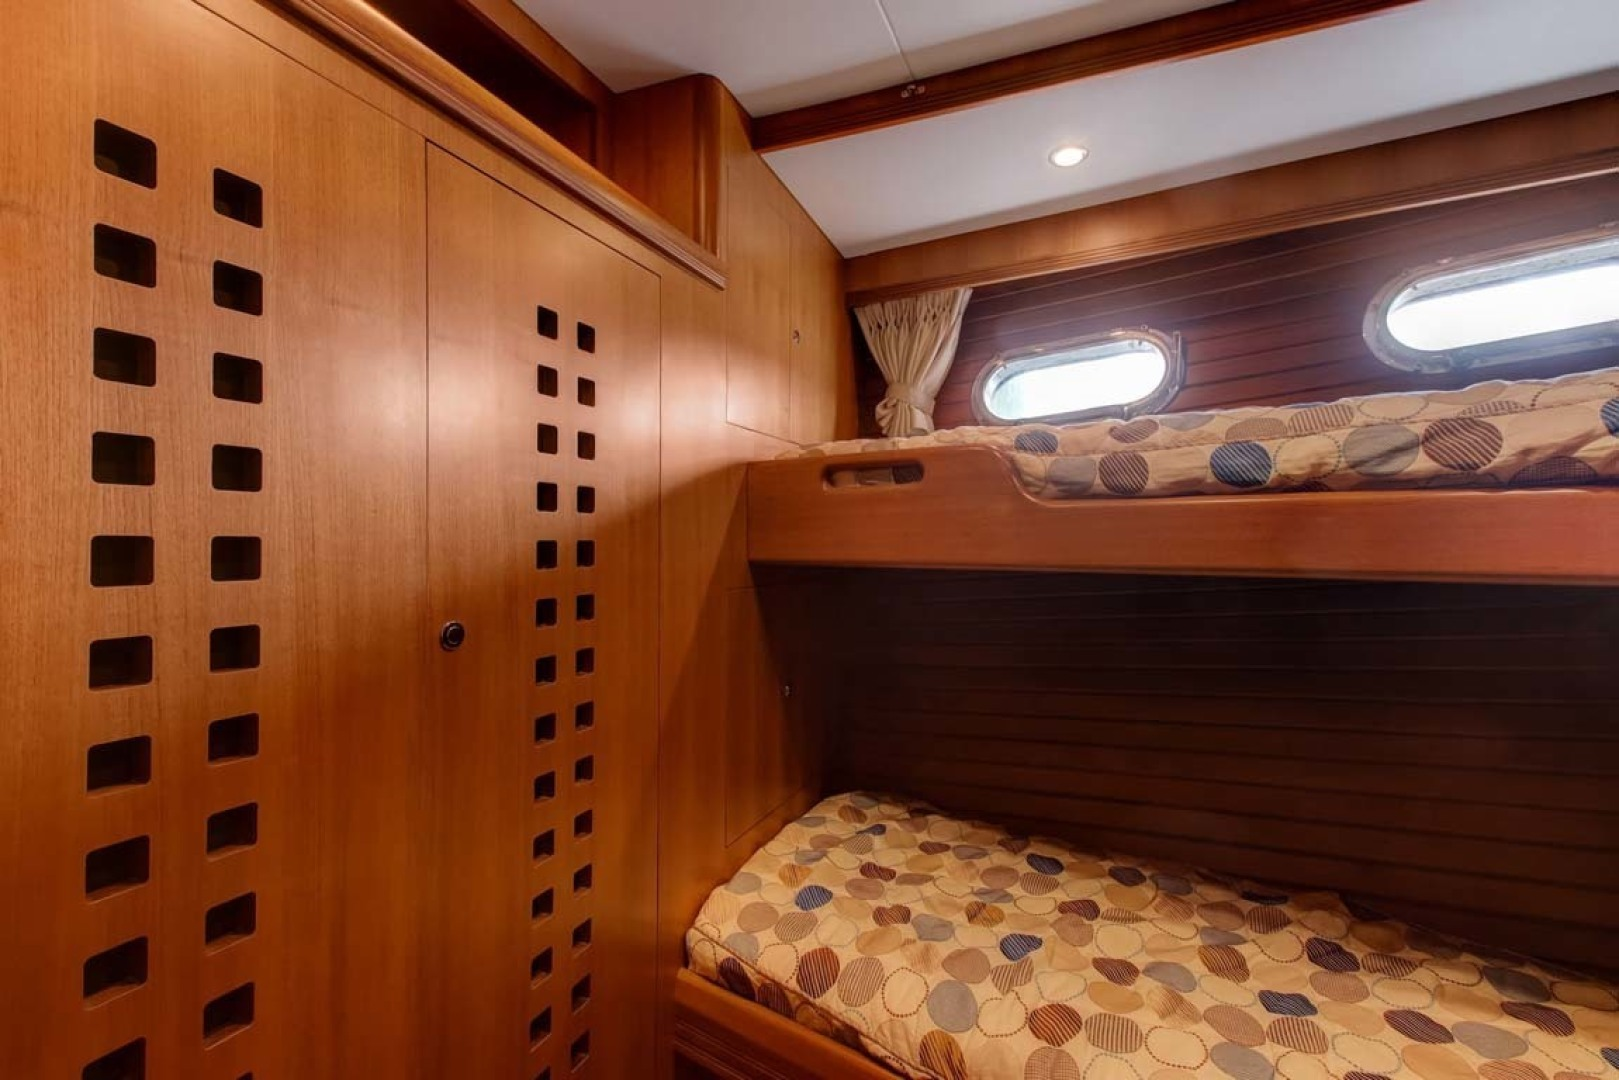 Selene-60 Ocean Trawler 2010-Gypsy Magic Jacksonville-Florida-United States-Midship Bunks-1346766 | Thumbnail